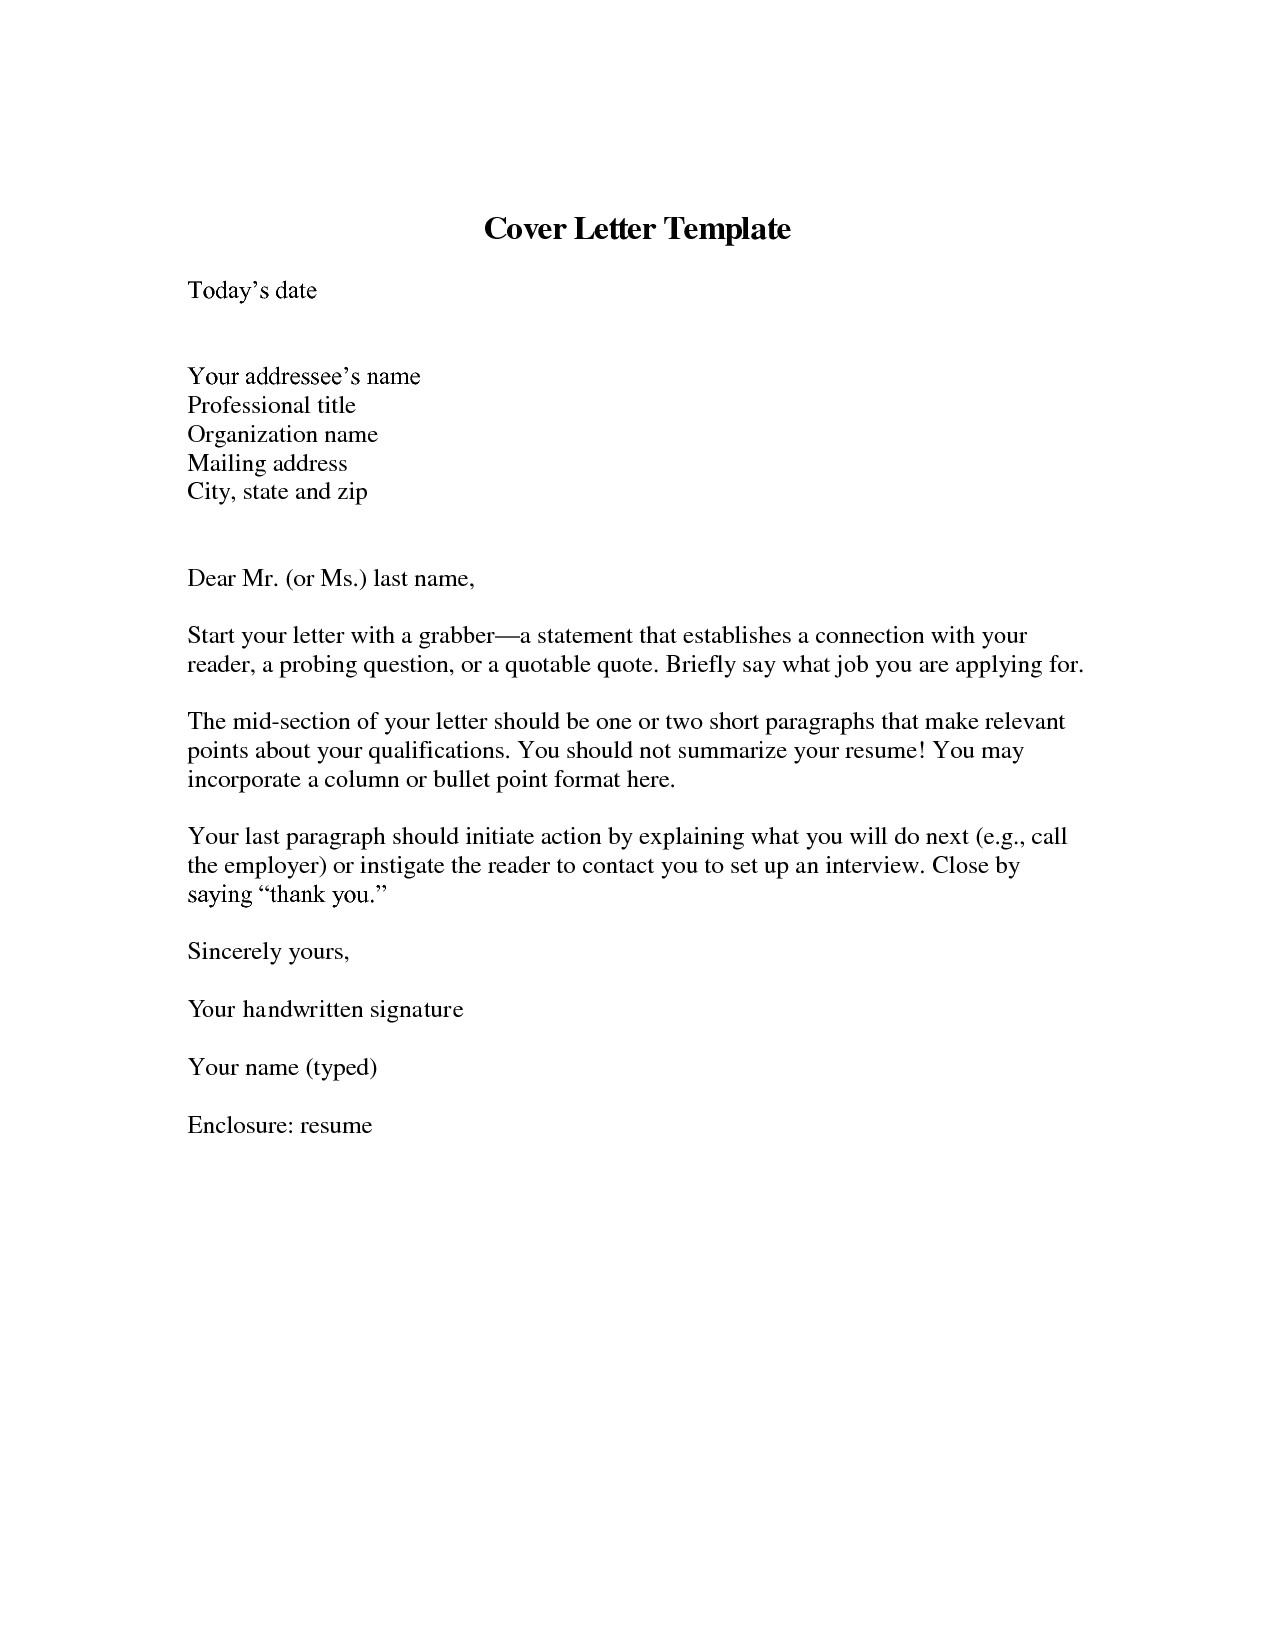 download cover letter template